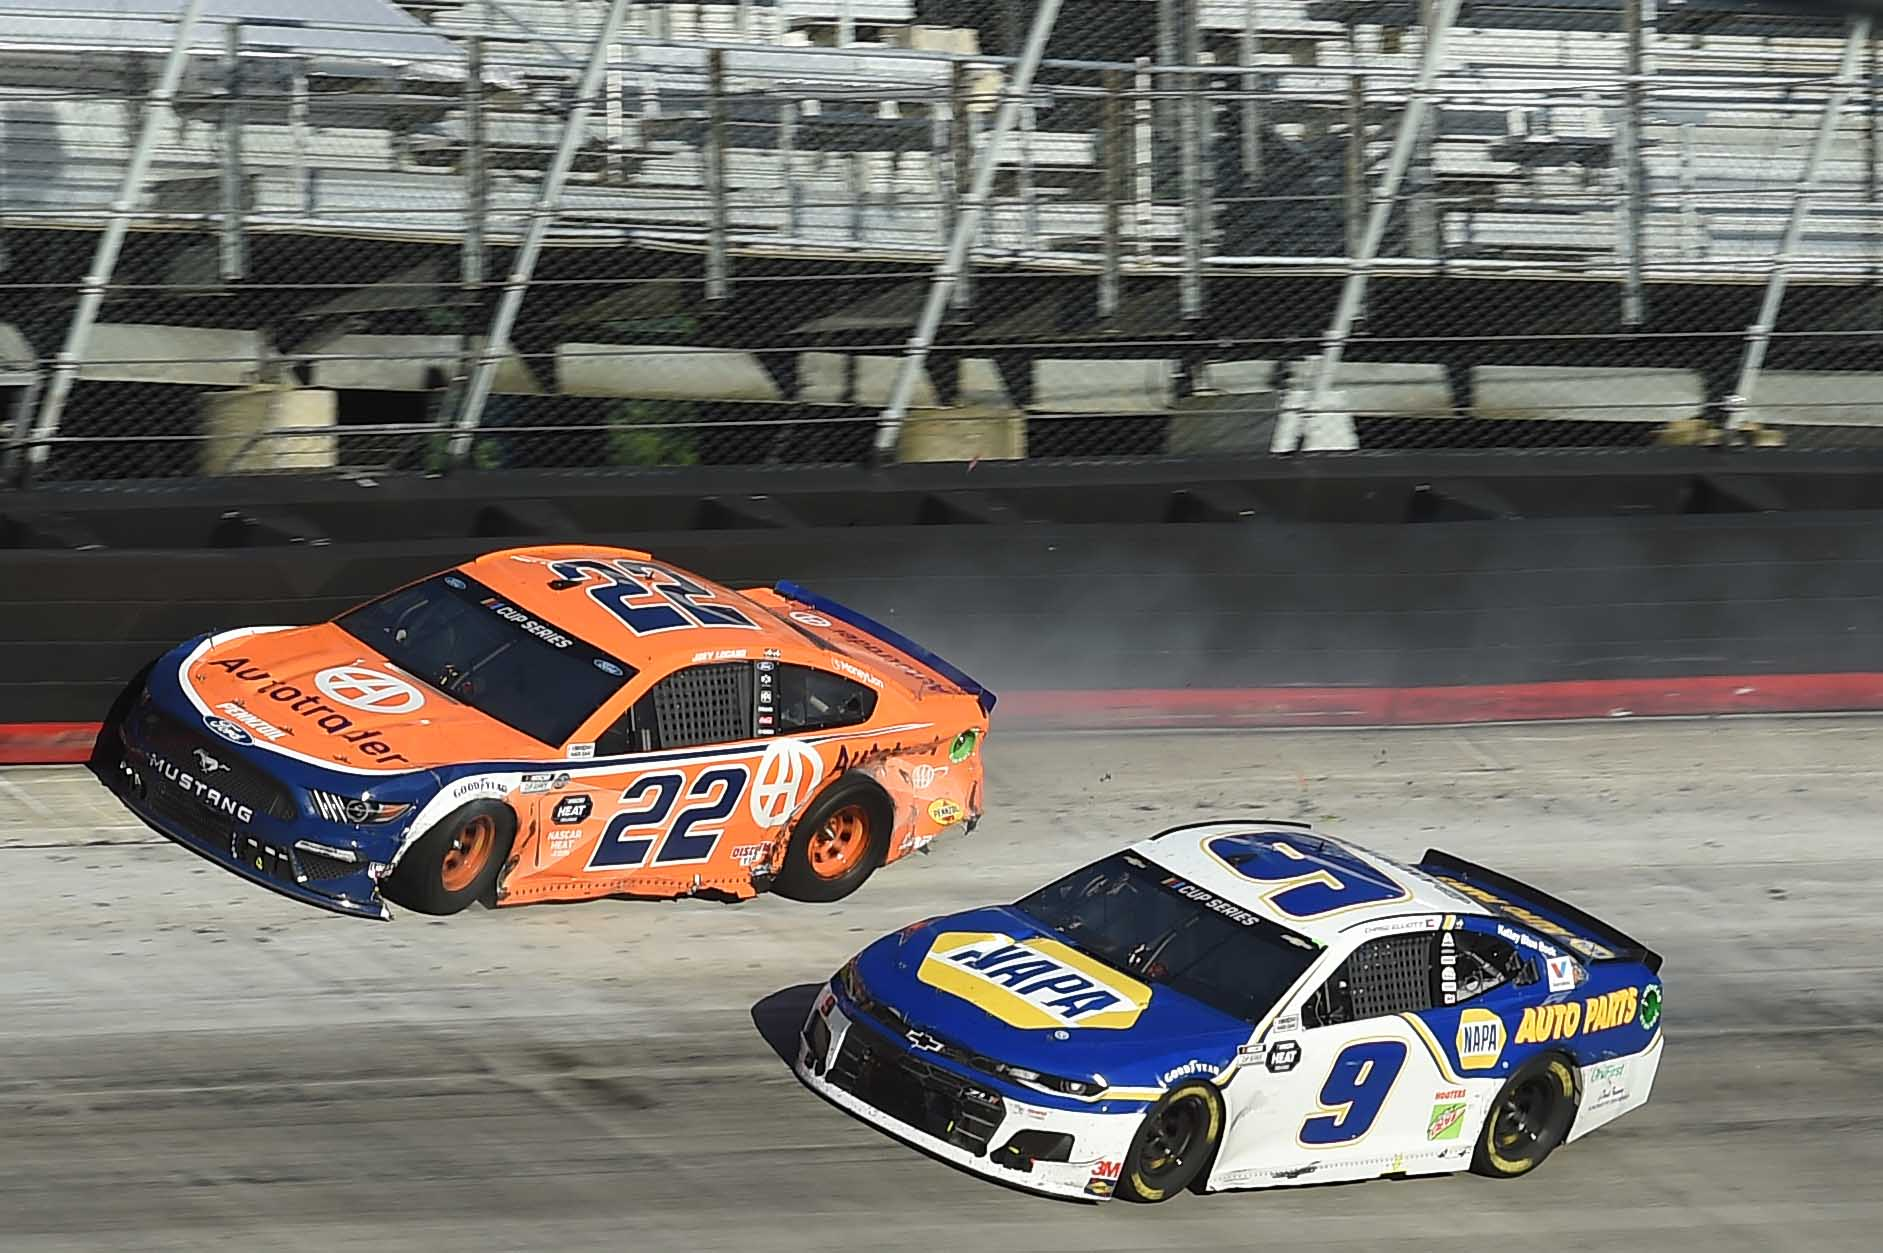 Chase Elliott crashes Joey Logano in NASCAR race at Bristol Motor Speedway (Video) - Racing News